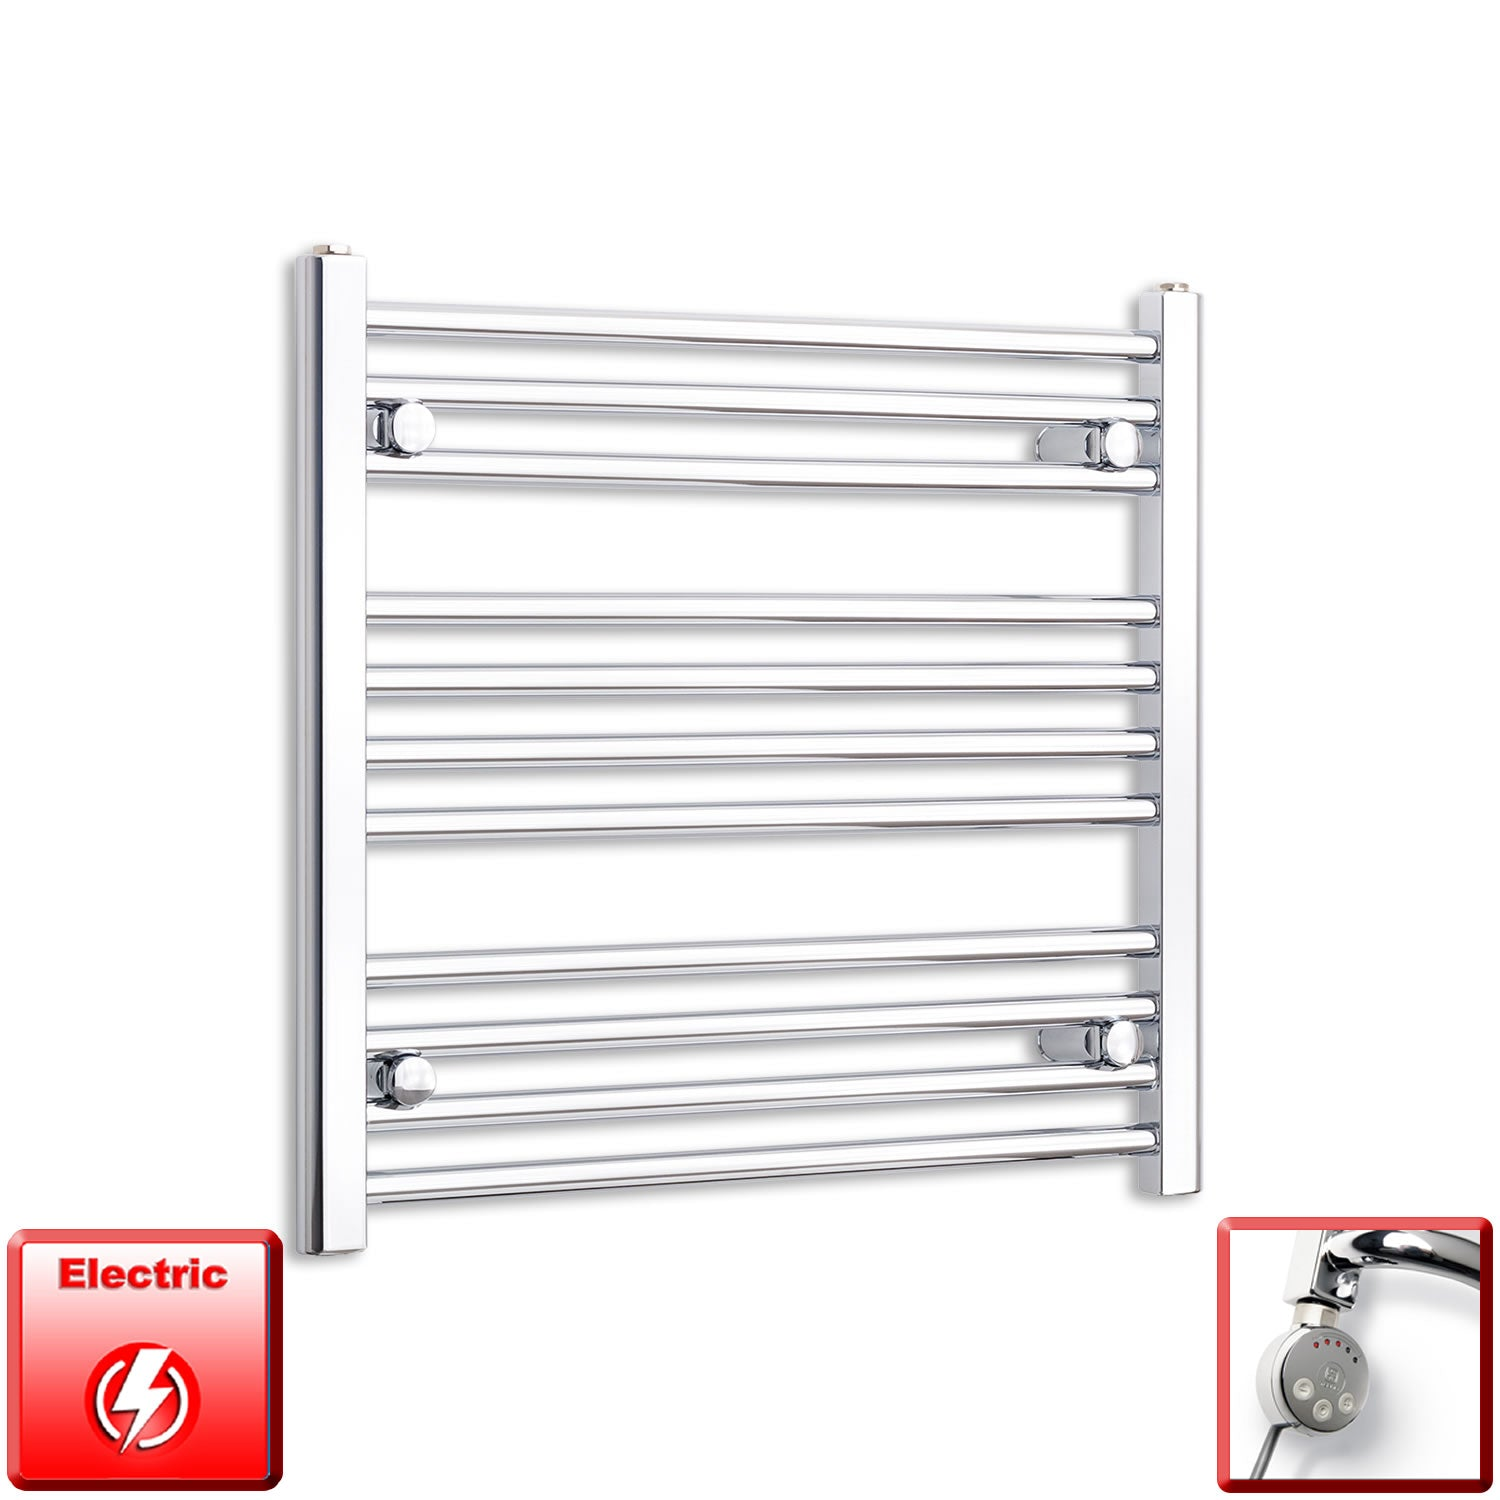 600mm Wide 600mm High Pre-Filled Chrome Electric Towel Rail Radiator With Thermostatic MEG Element